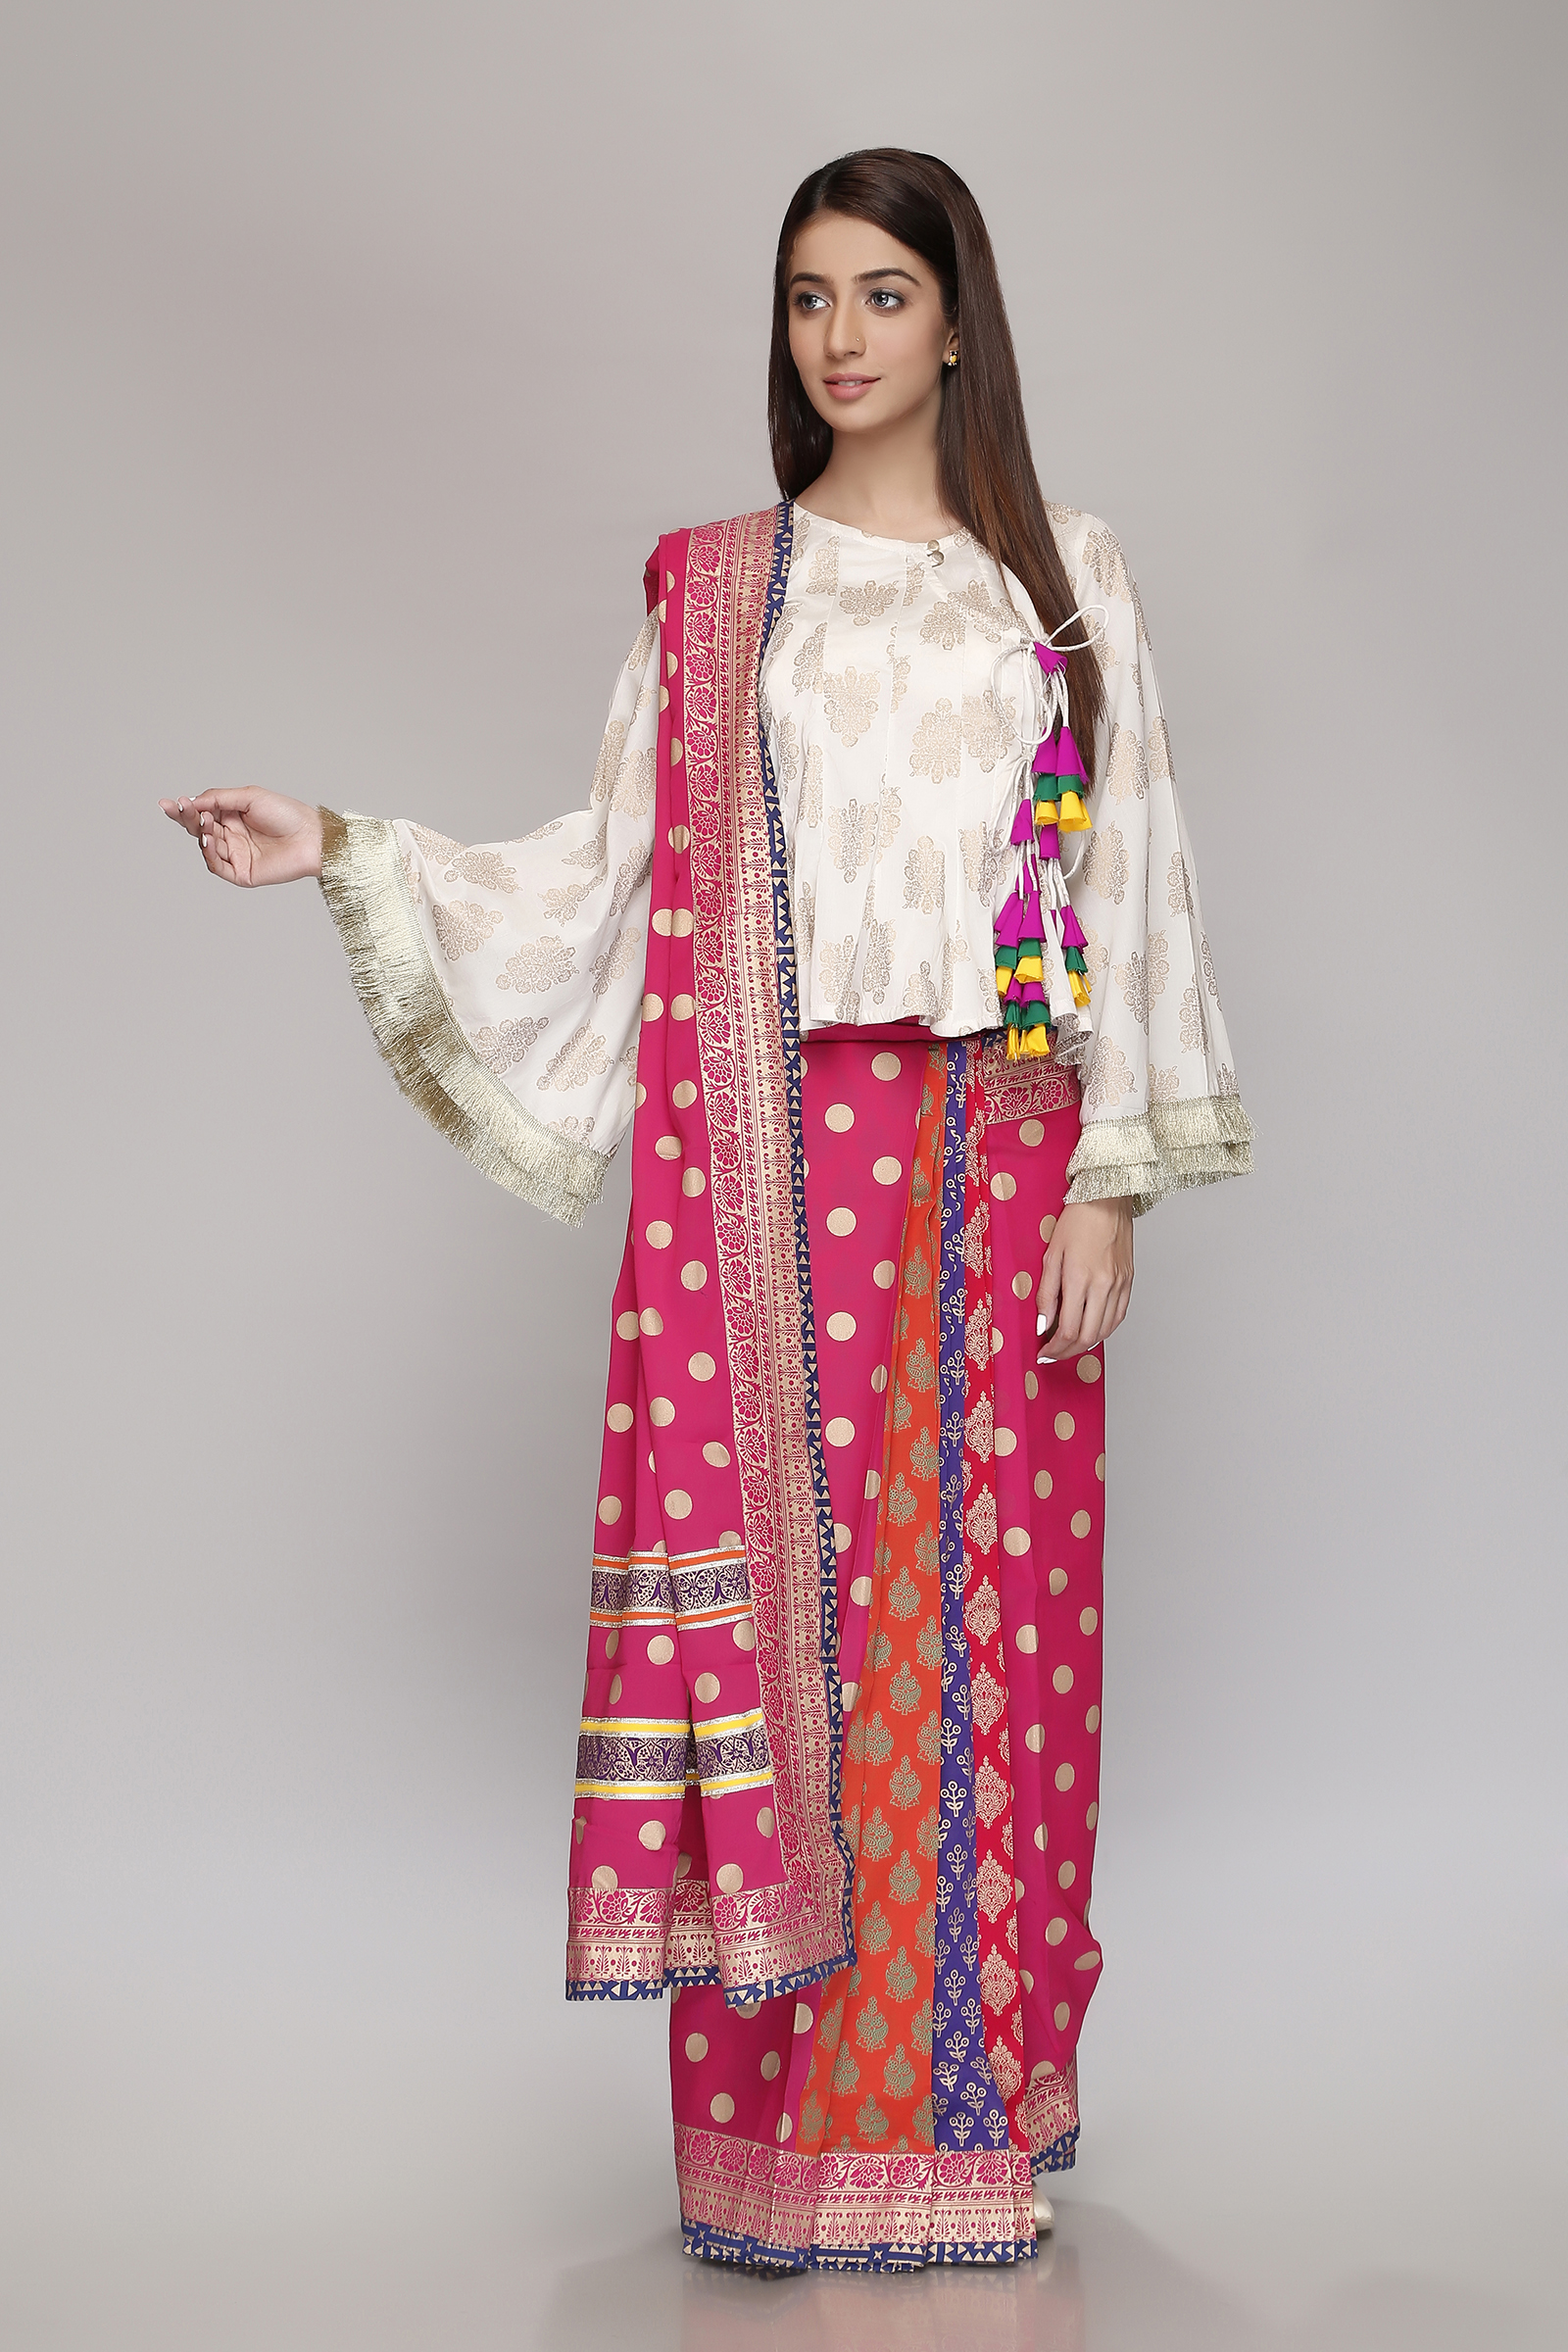 a3c2b648f57 Nowadays the trend of wearing tulip pants are very much famous in Pakistan   it is regarded to the latest trend in Pakistani fashion.